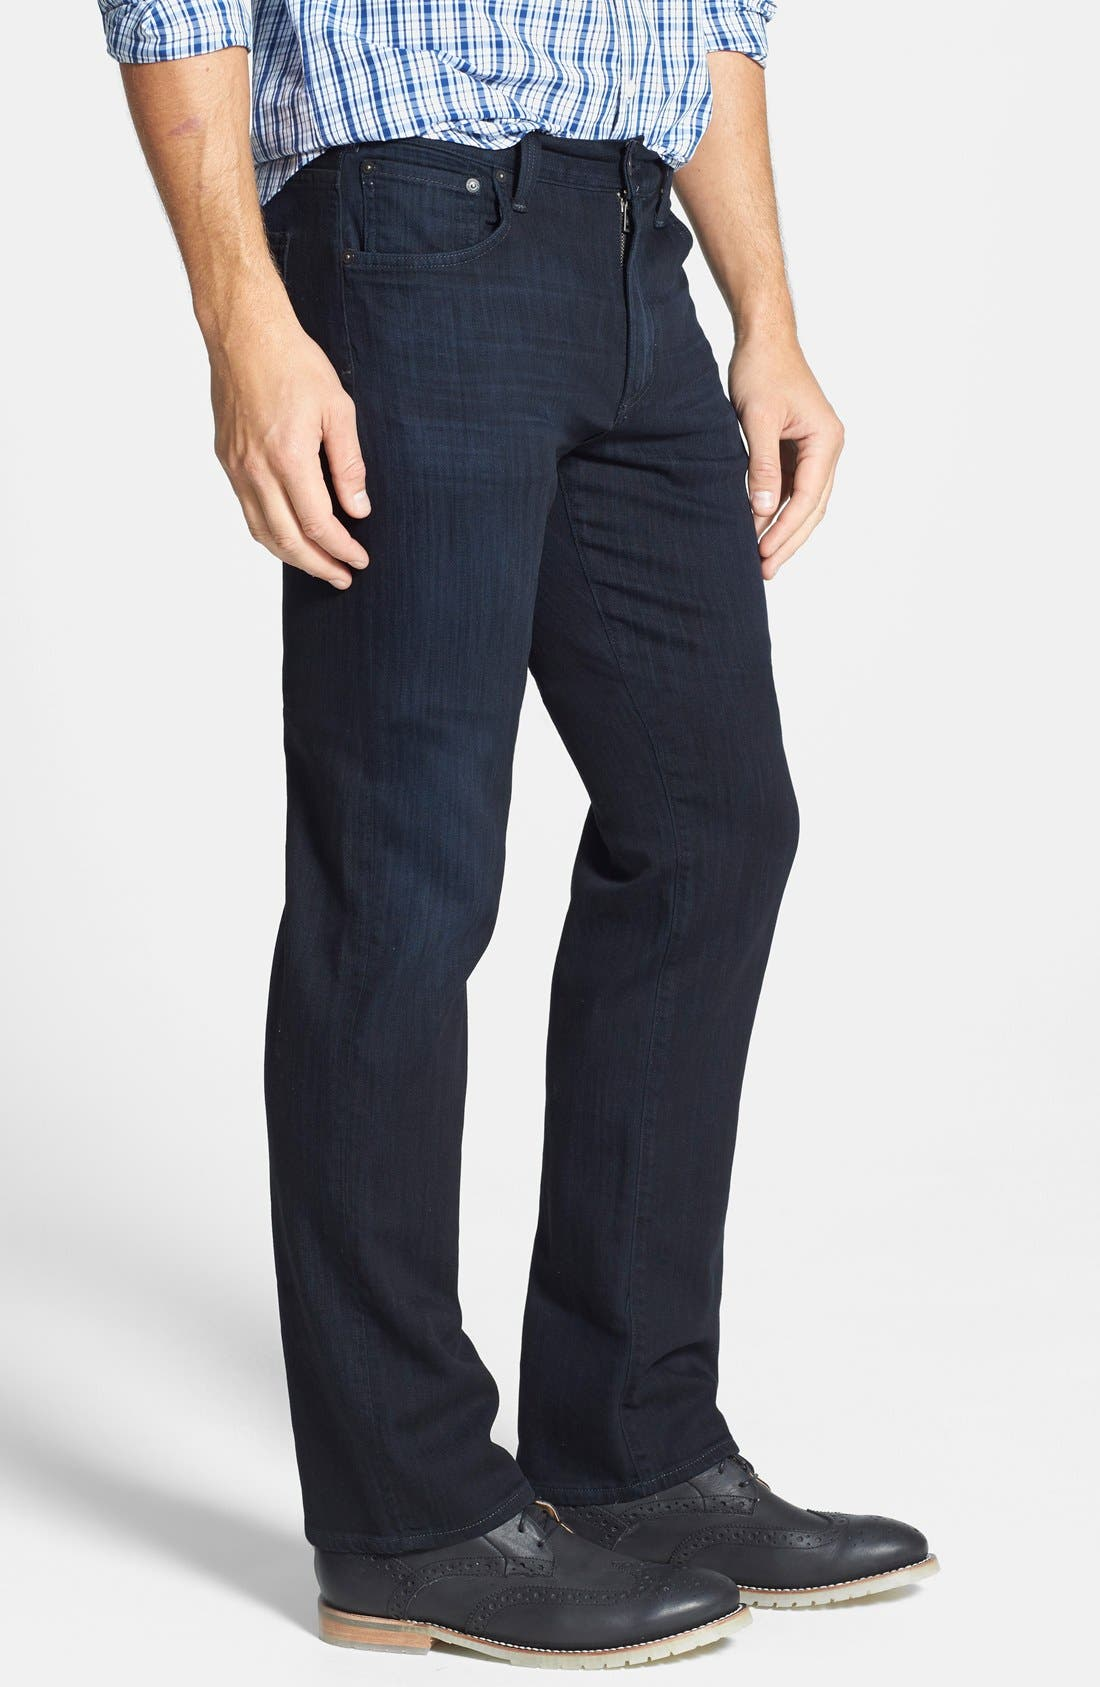 Sid Classic Straight Leg Jeans,                             Alternate thumbnail 5, color,                             REESE WASH